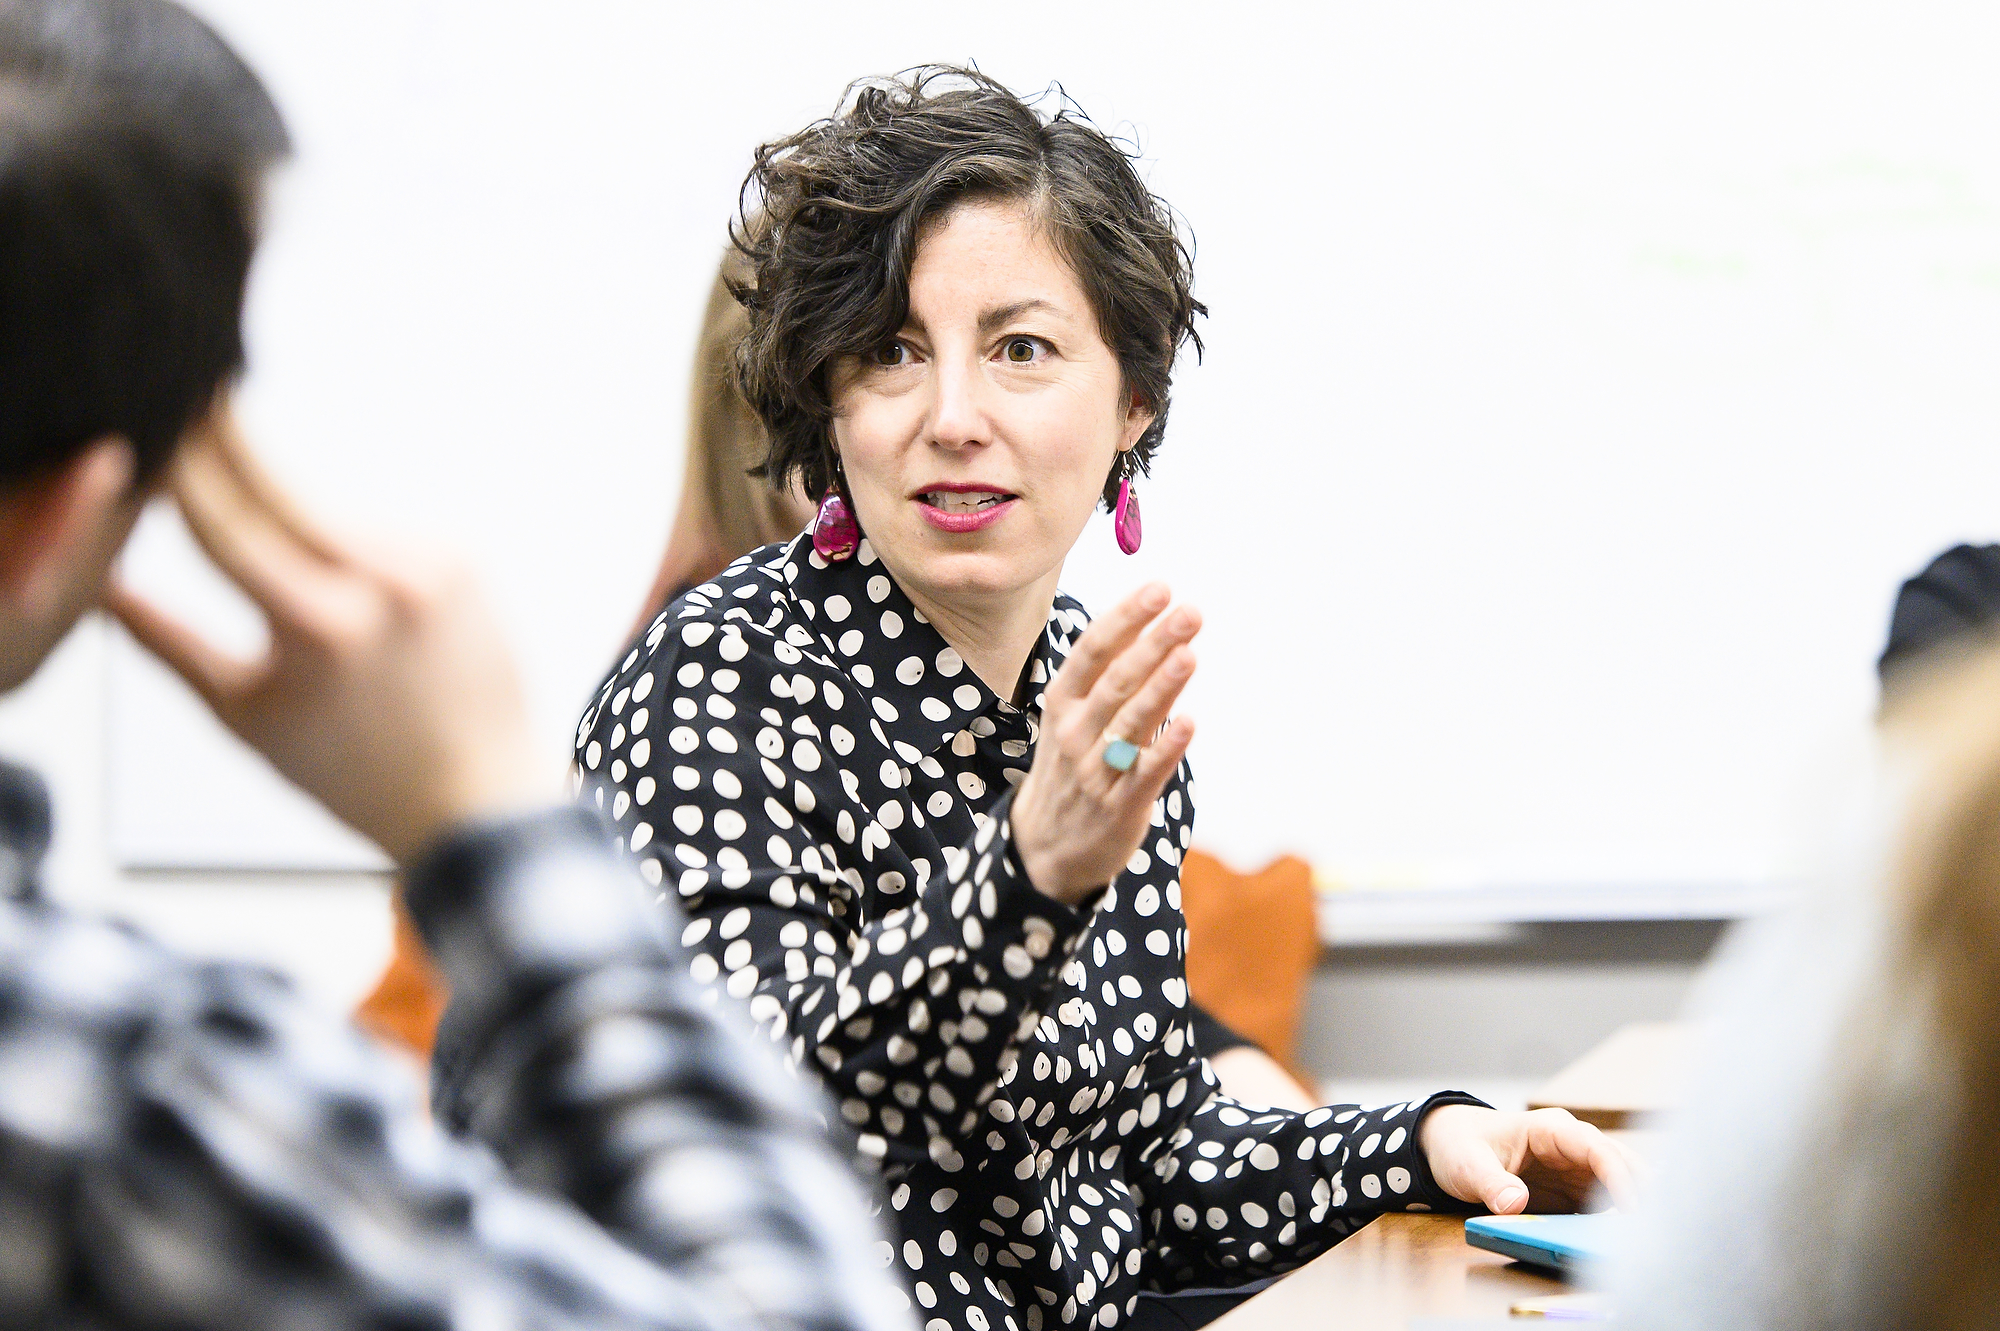 Kate Vieira sitting at a table talking to a student and gesturing with her hand